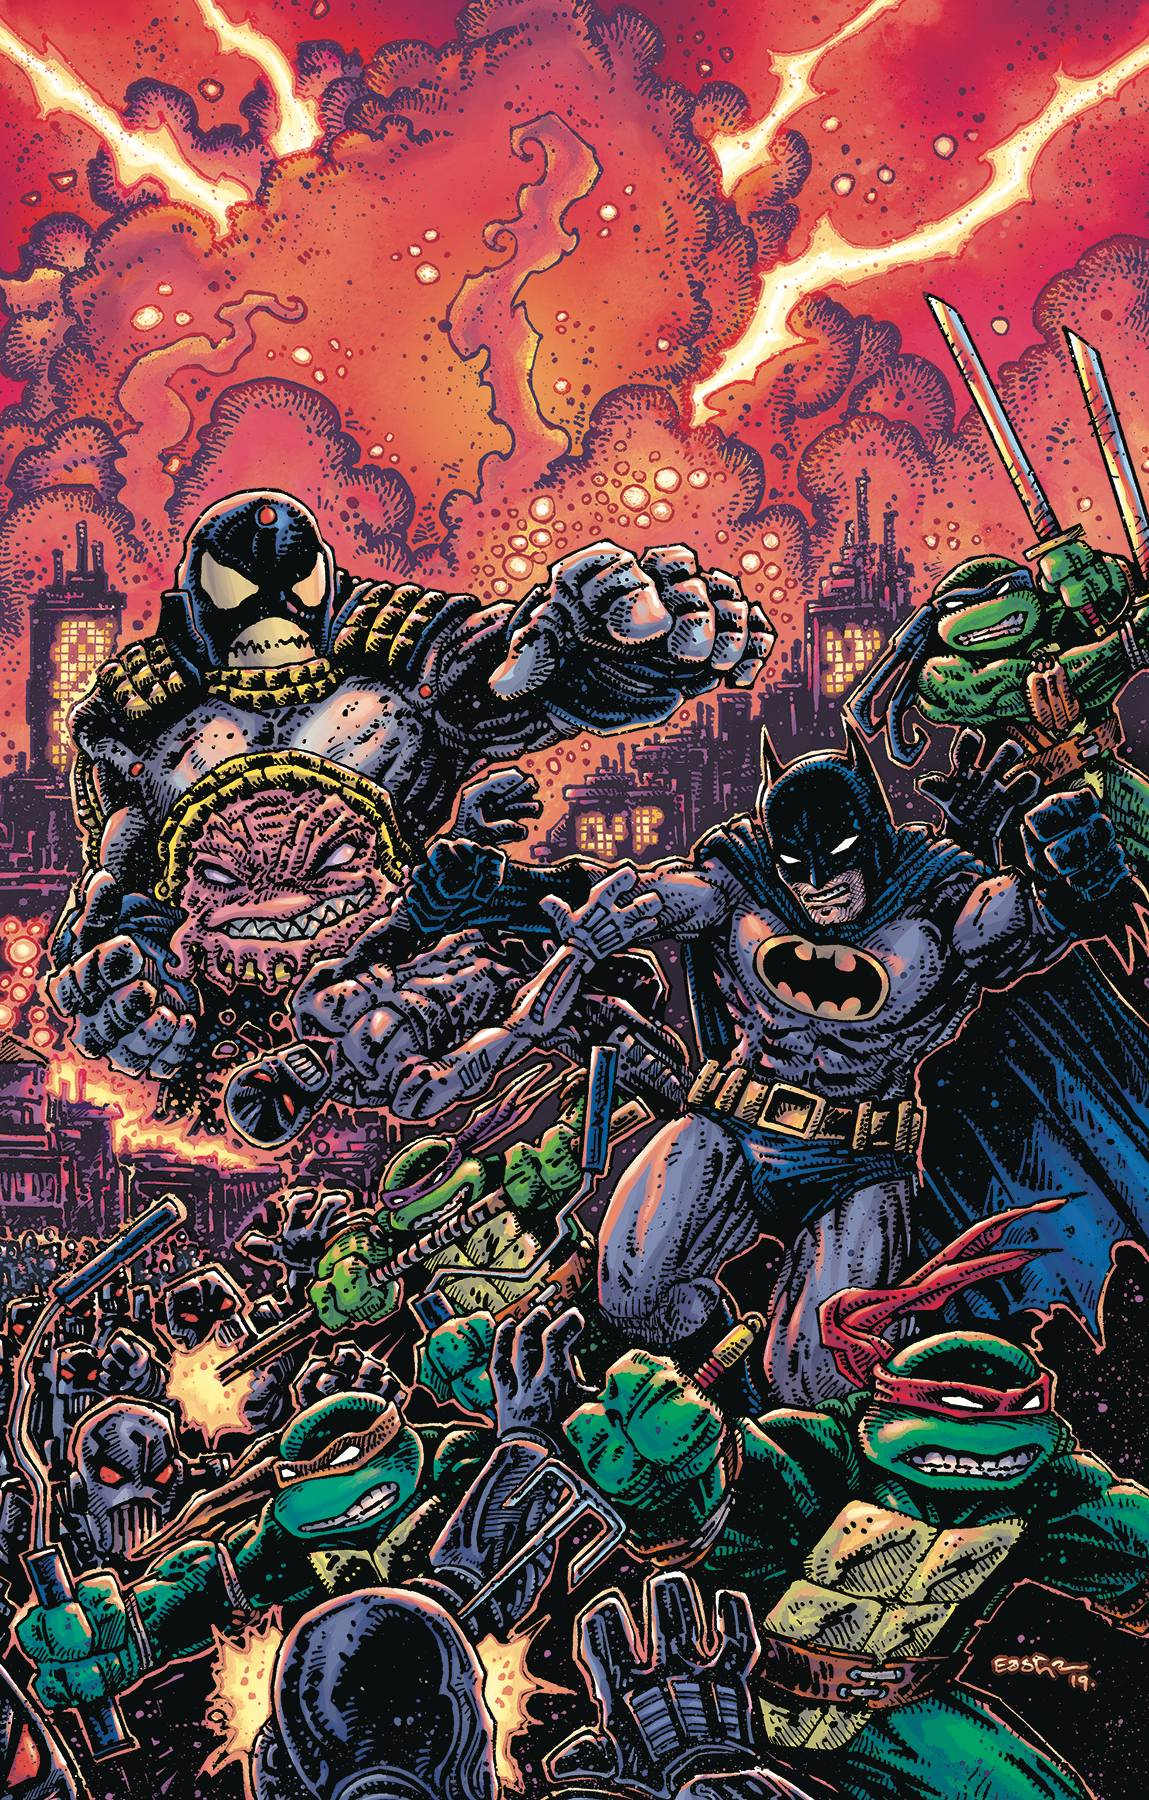 BATMAN TEENAGE MUTANT NINJA TURTLES III 6 of 6 VAR ED.jpg